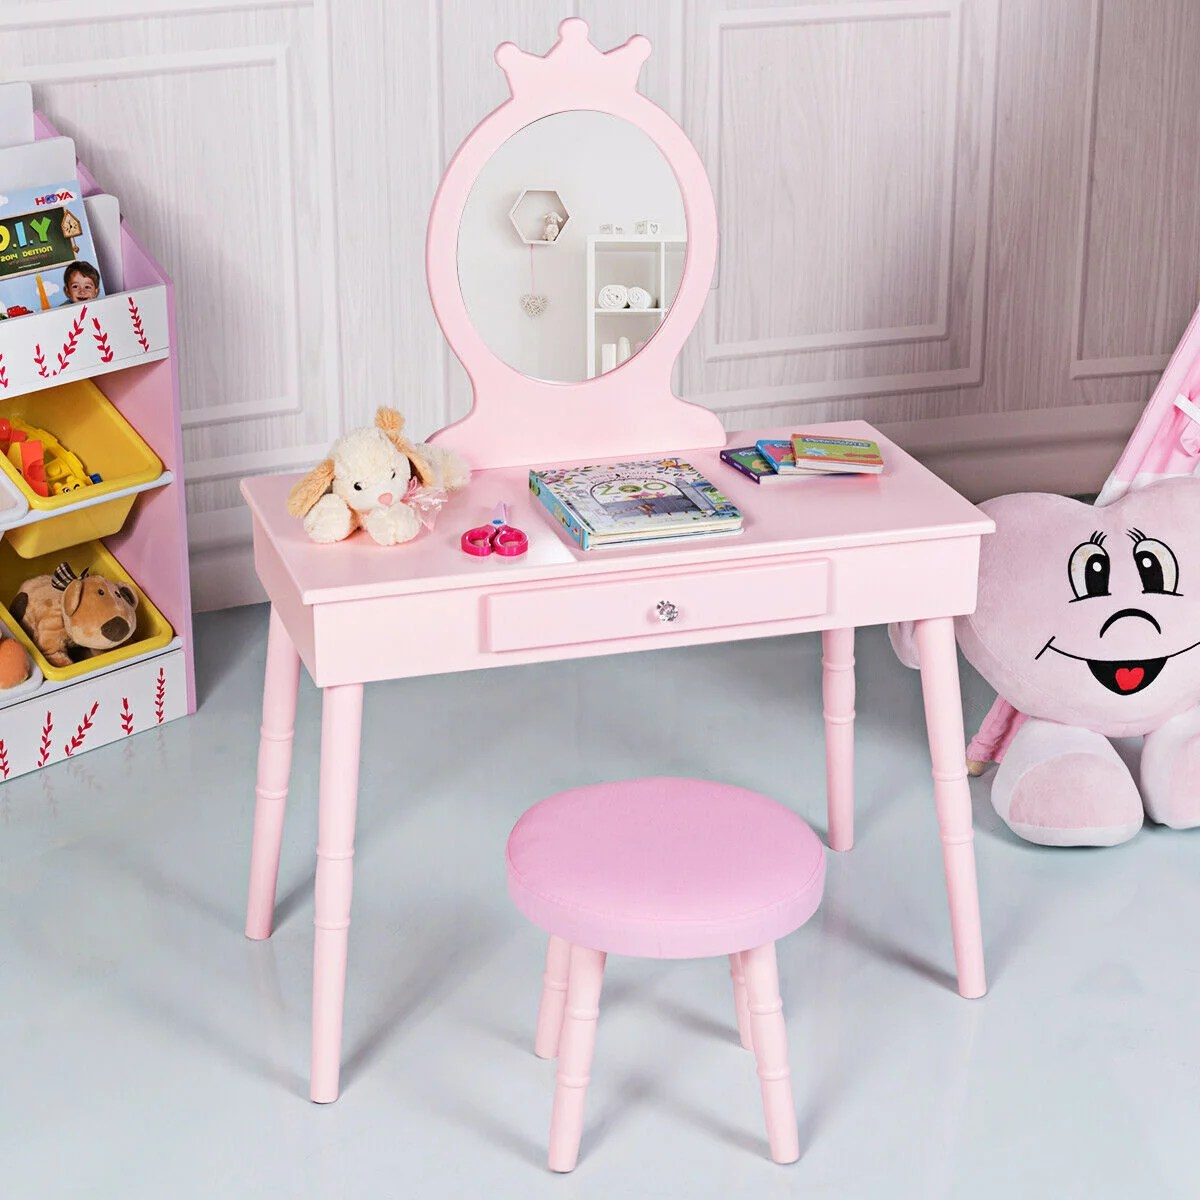 gymax kids vanity makeup table chair set make up stool play set for children pink